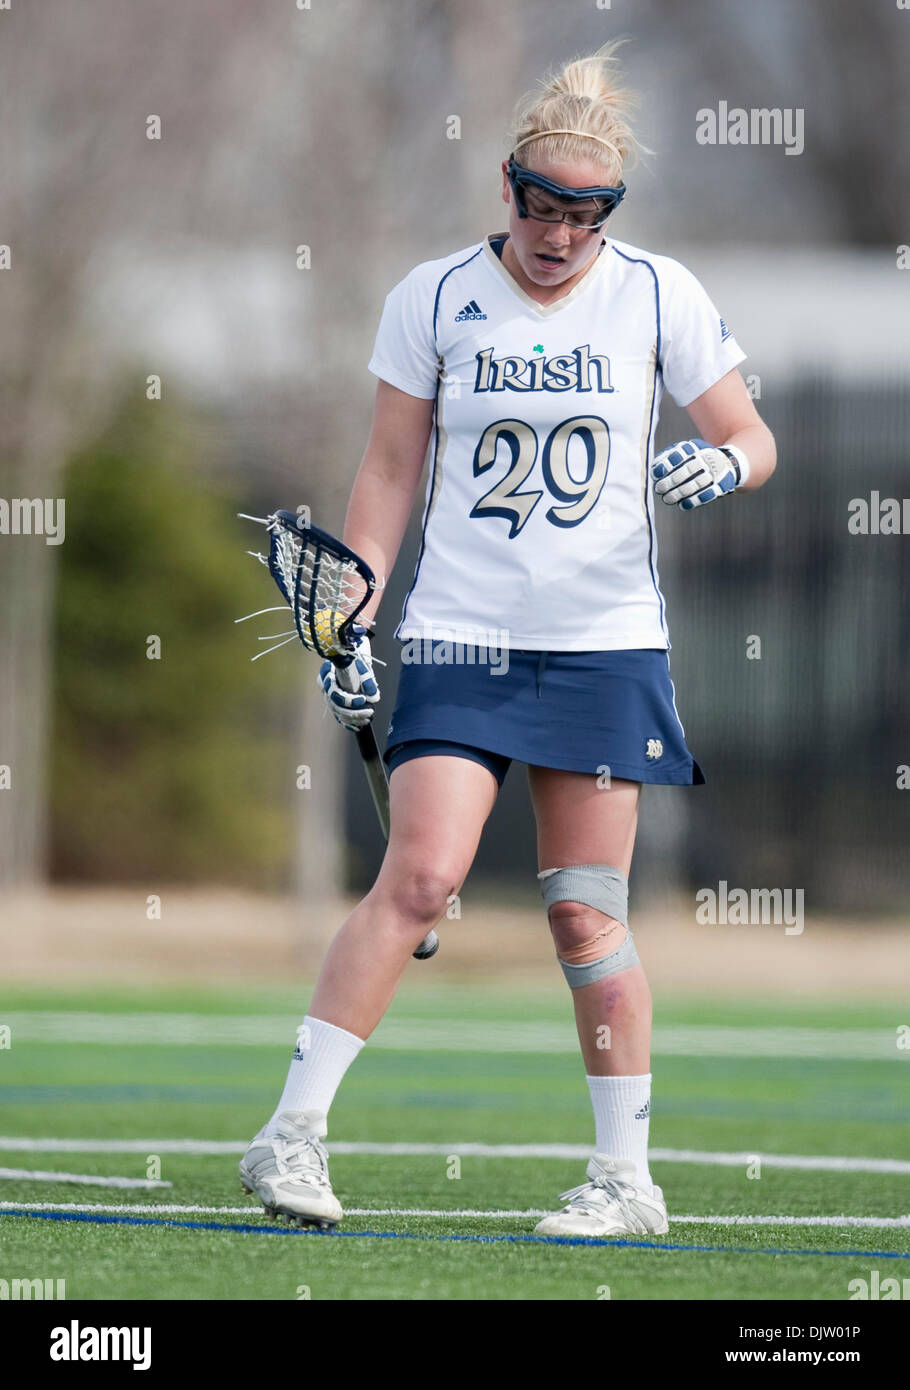 notre dame midfielder shaylyn blaney in game action between notre dame midfielder shaylyn blaney 29 in game action between the notre dame fighting irish and the louisville cardinals at arlotta stadium in south bend